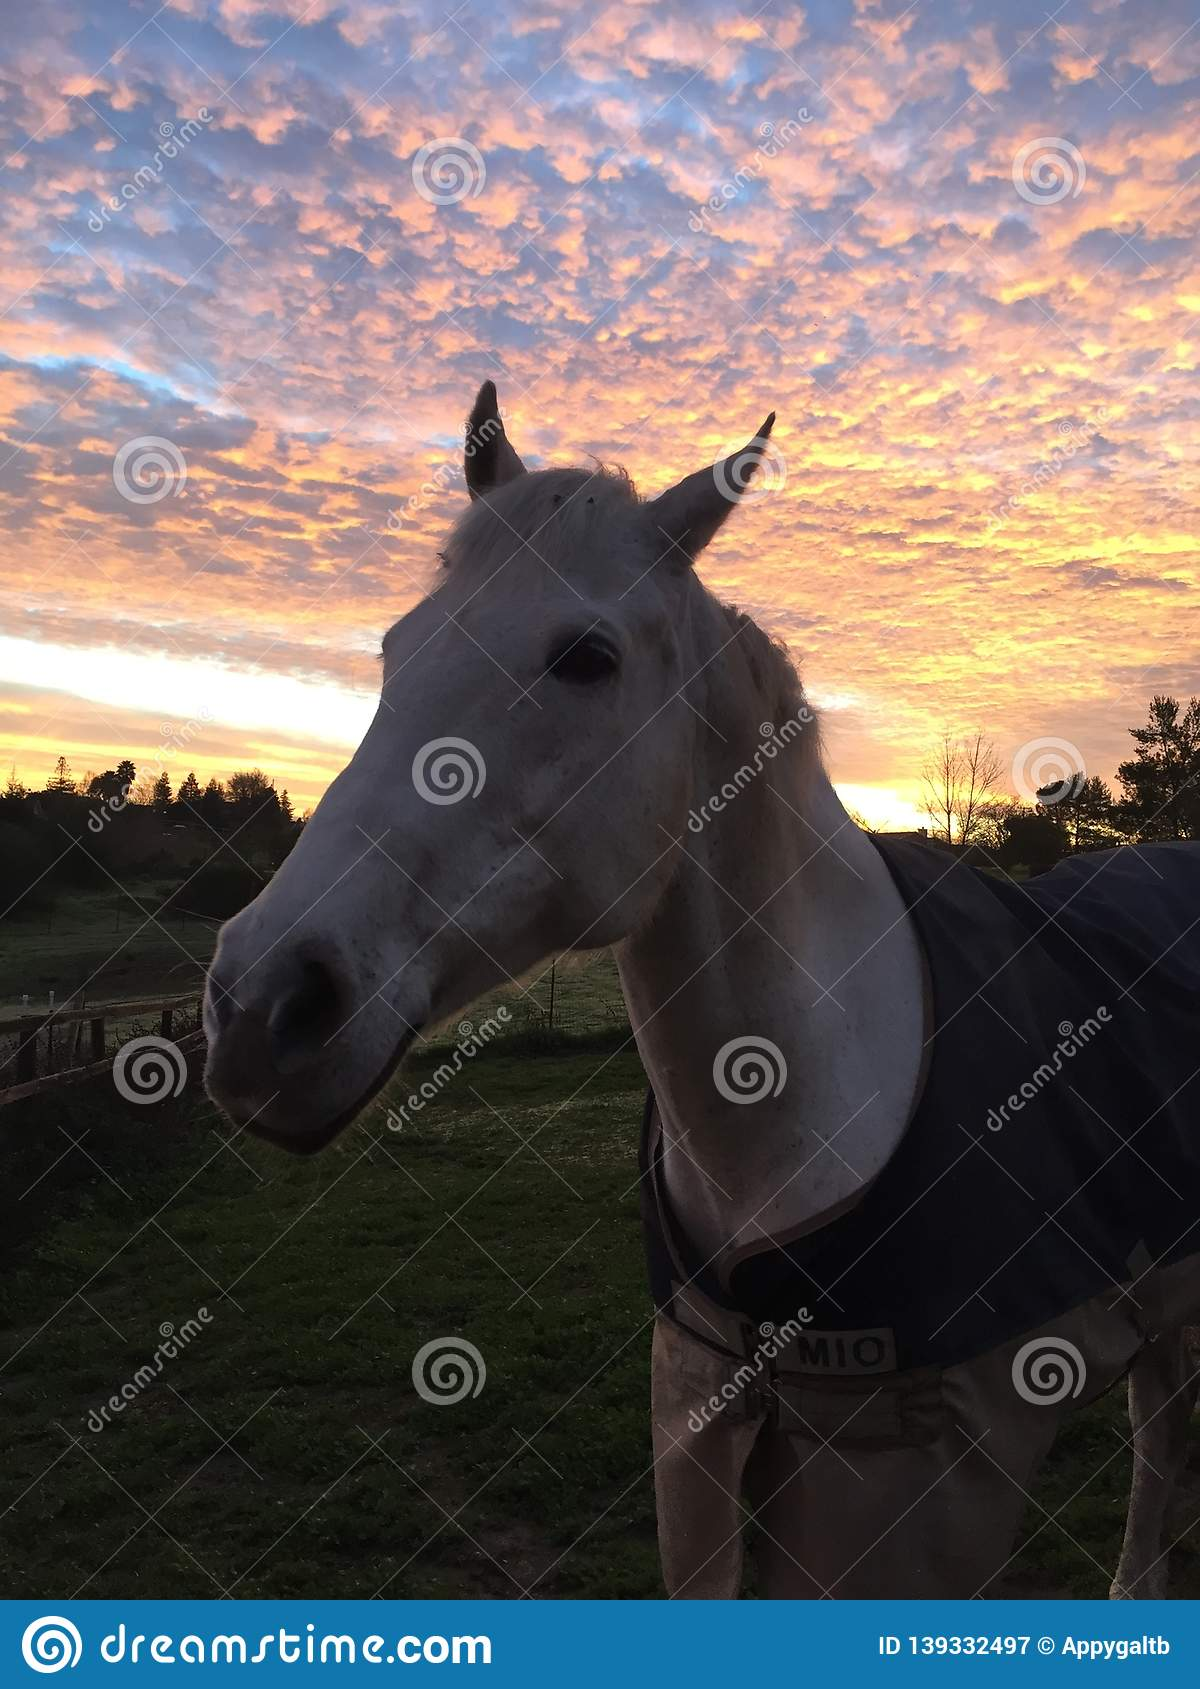 Amazing pink sky Sunrise with horse wearing a blanket